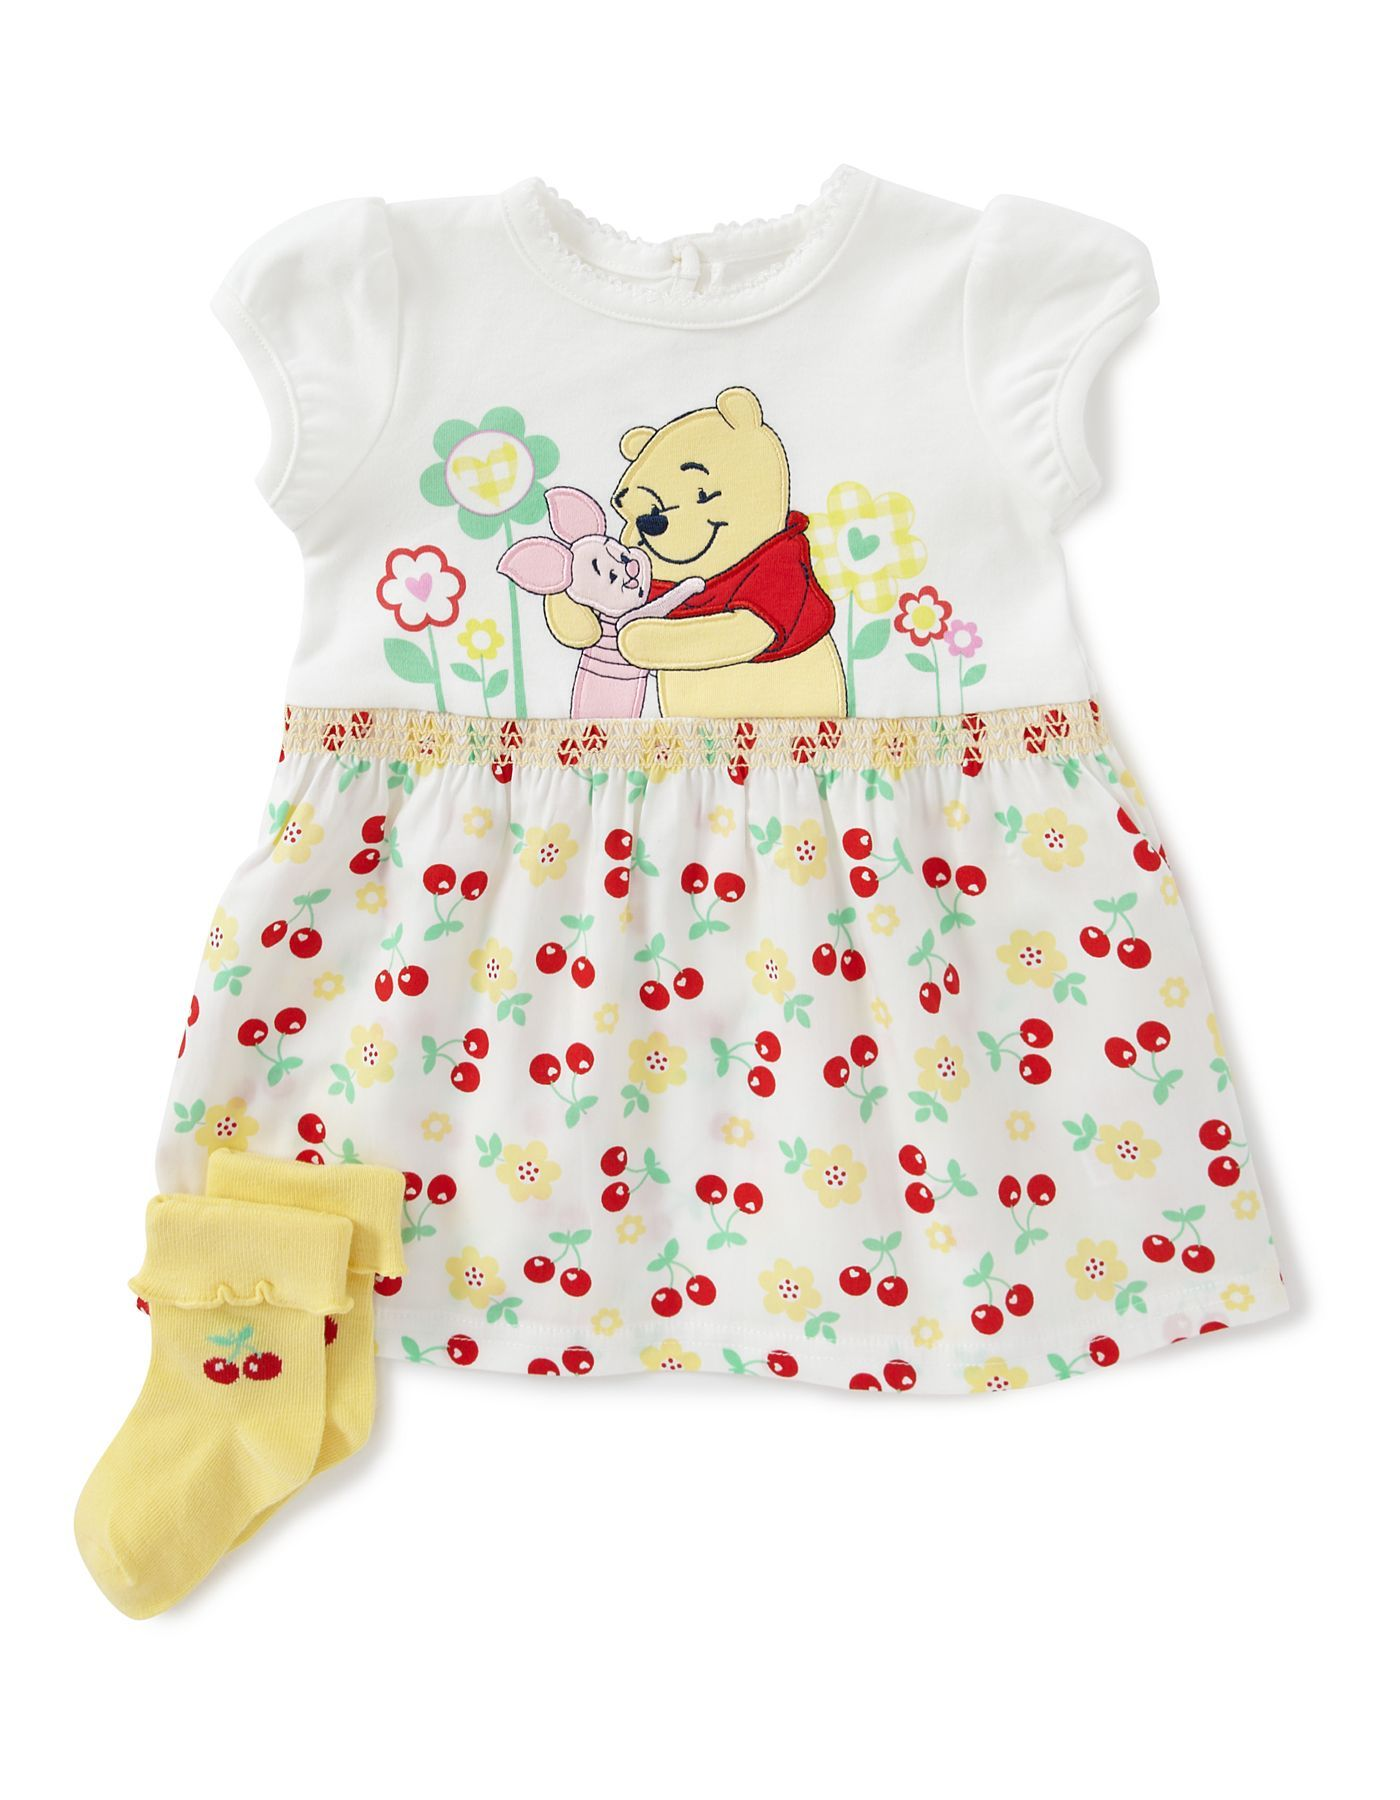 Winnie the Pooh Baby Dress Baby George at ASDA